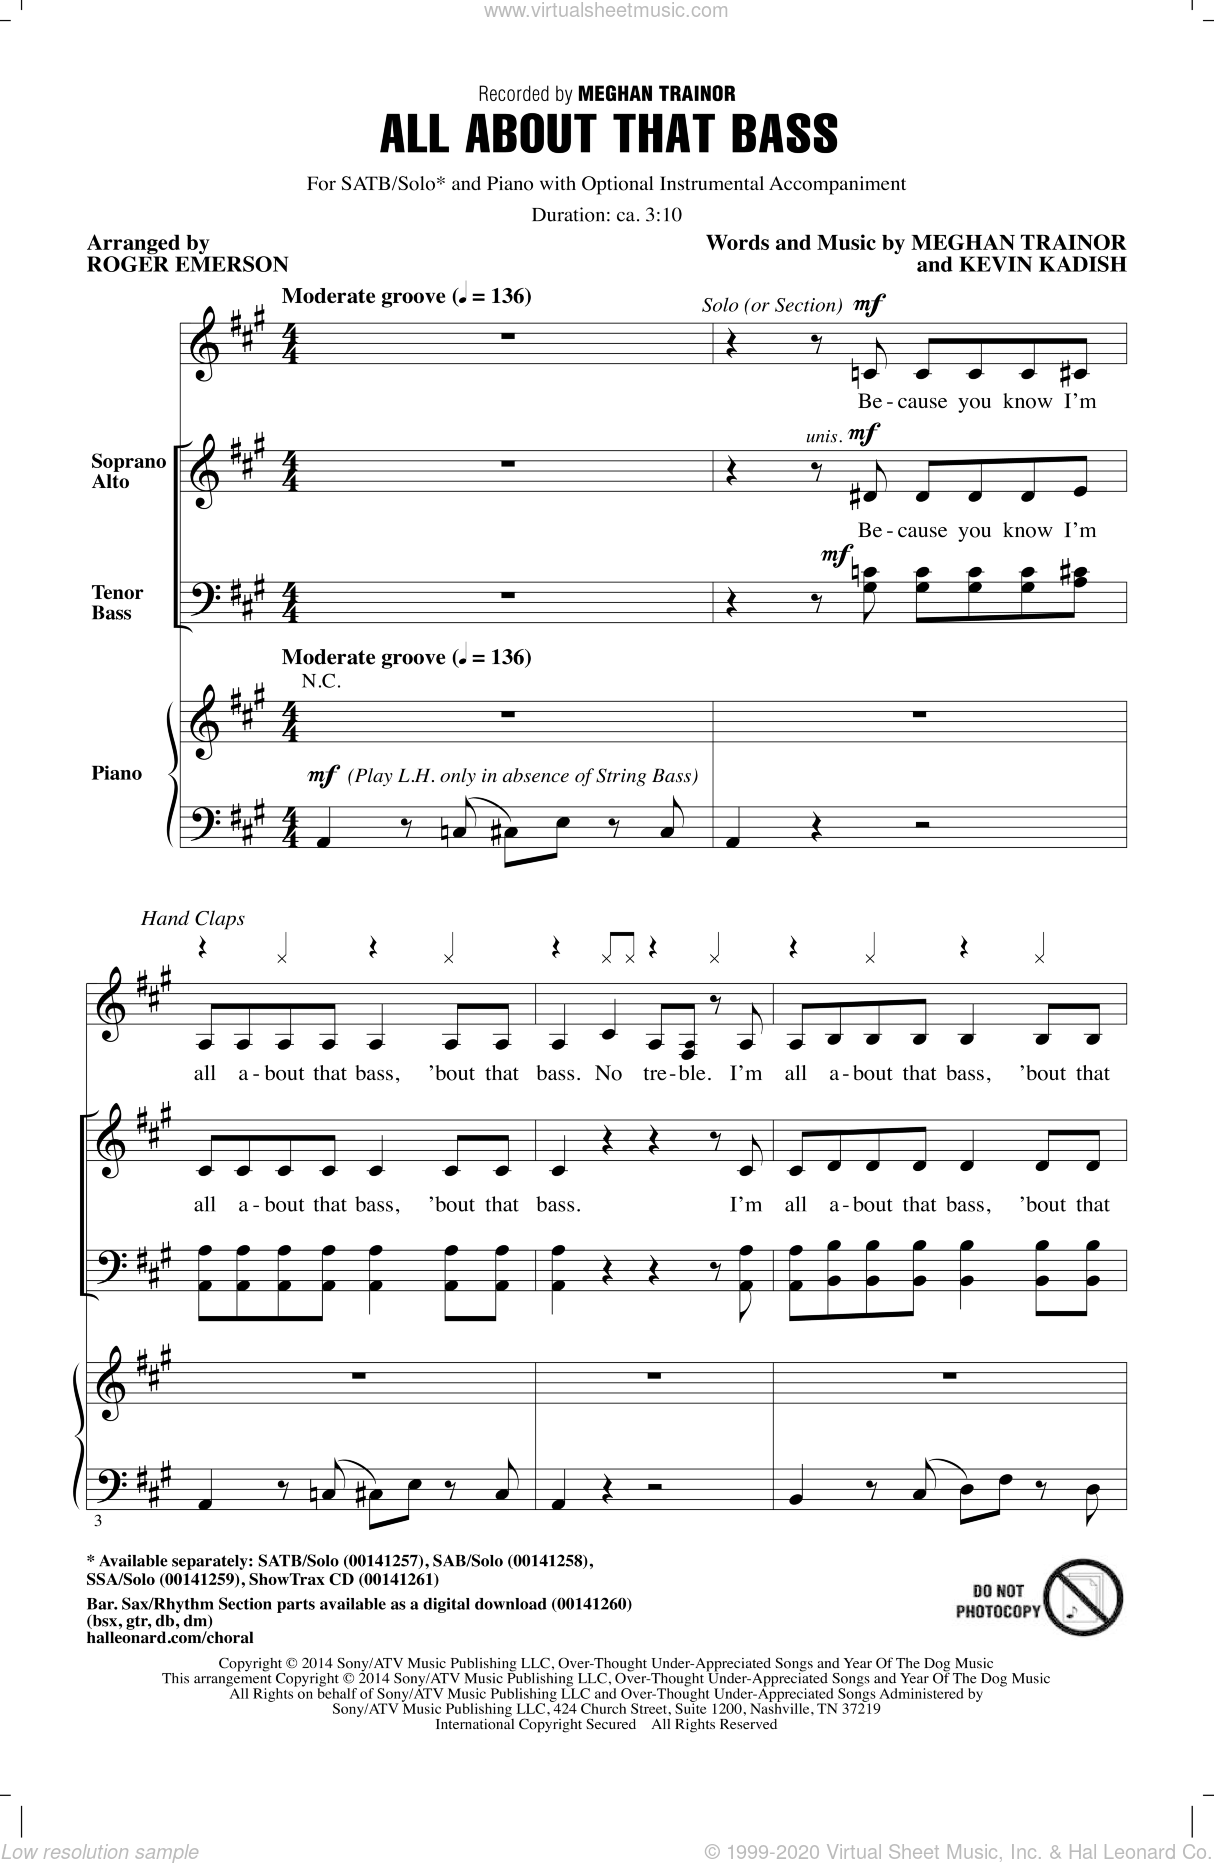 All About That Bass sheet music for choir (SATB) by Kevin Kadish, Roger Emerson and Meghan Trainor. Score Image Preview.